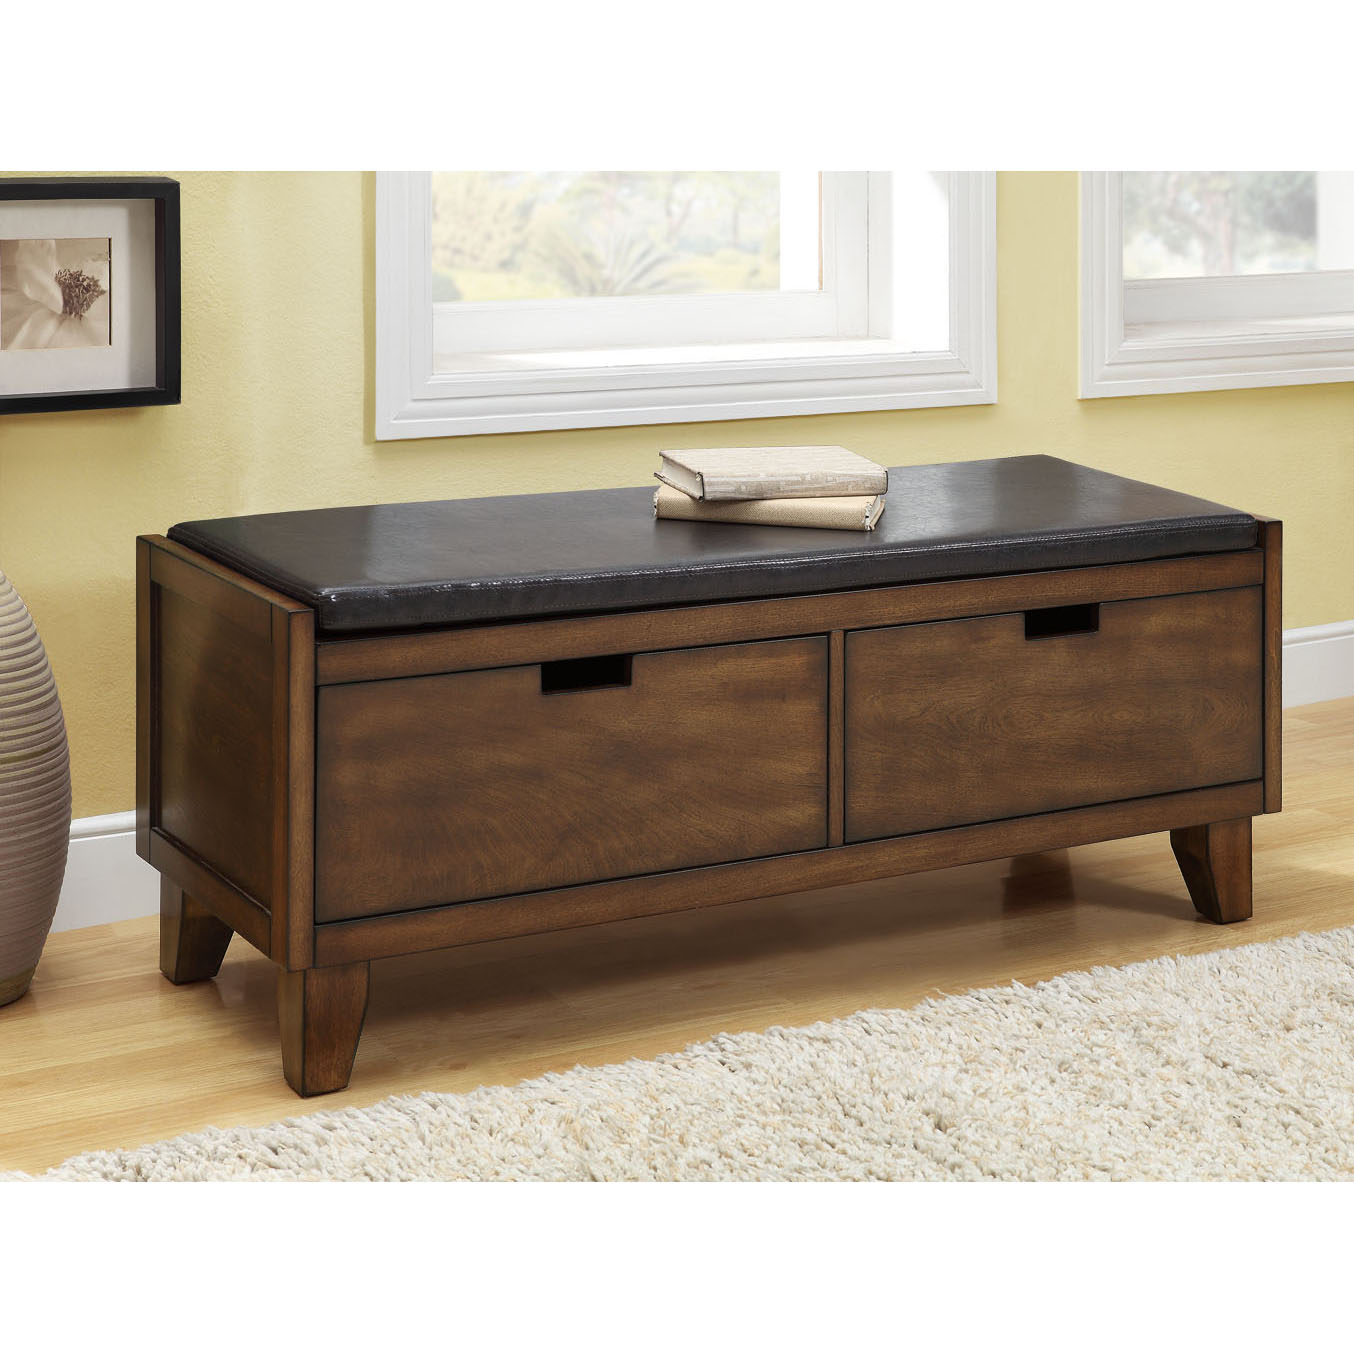 Dark Walnut Solid Wood Bench With Drawers Free Shipping